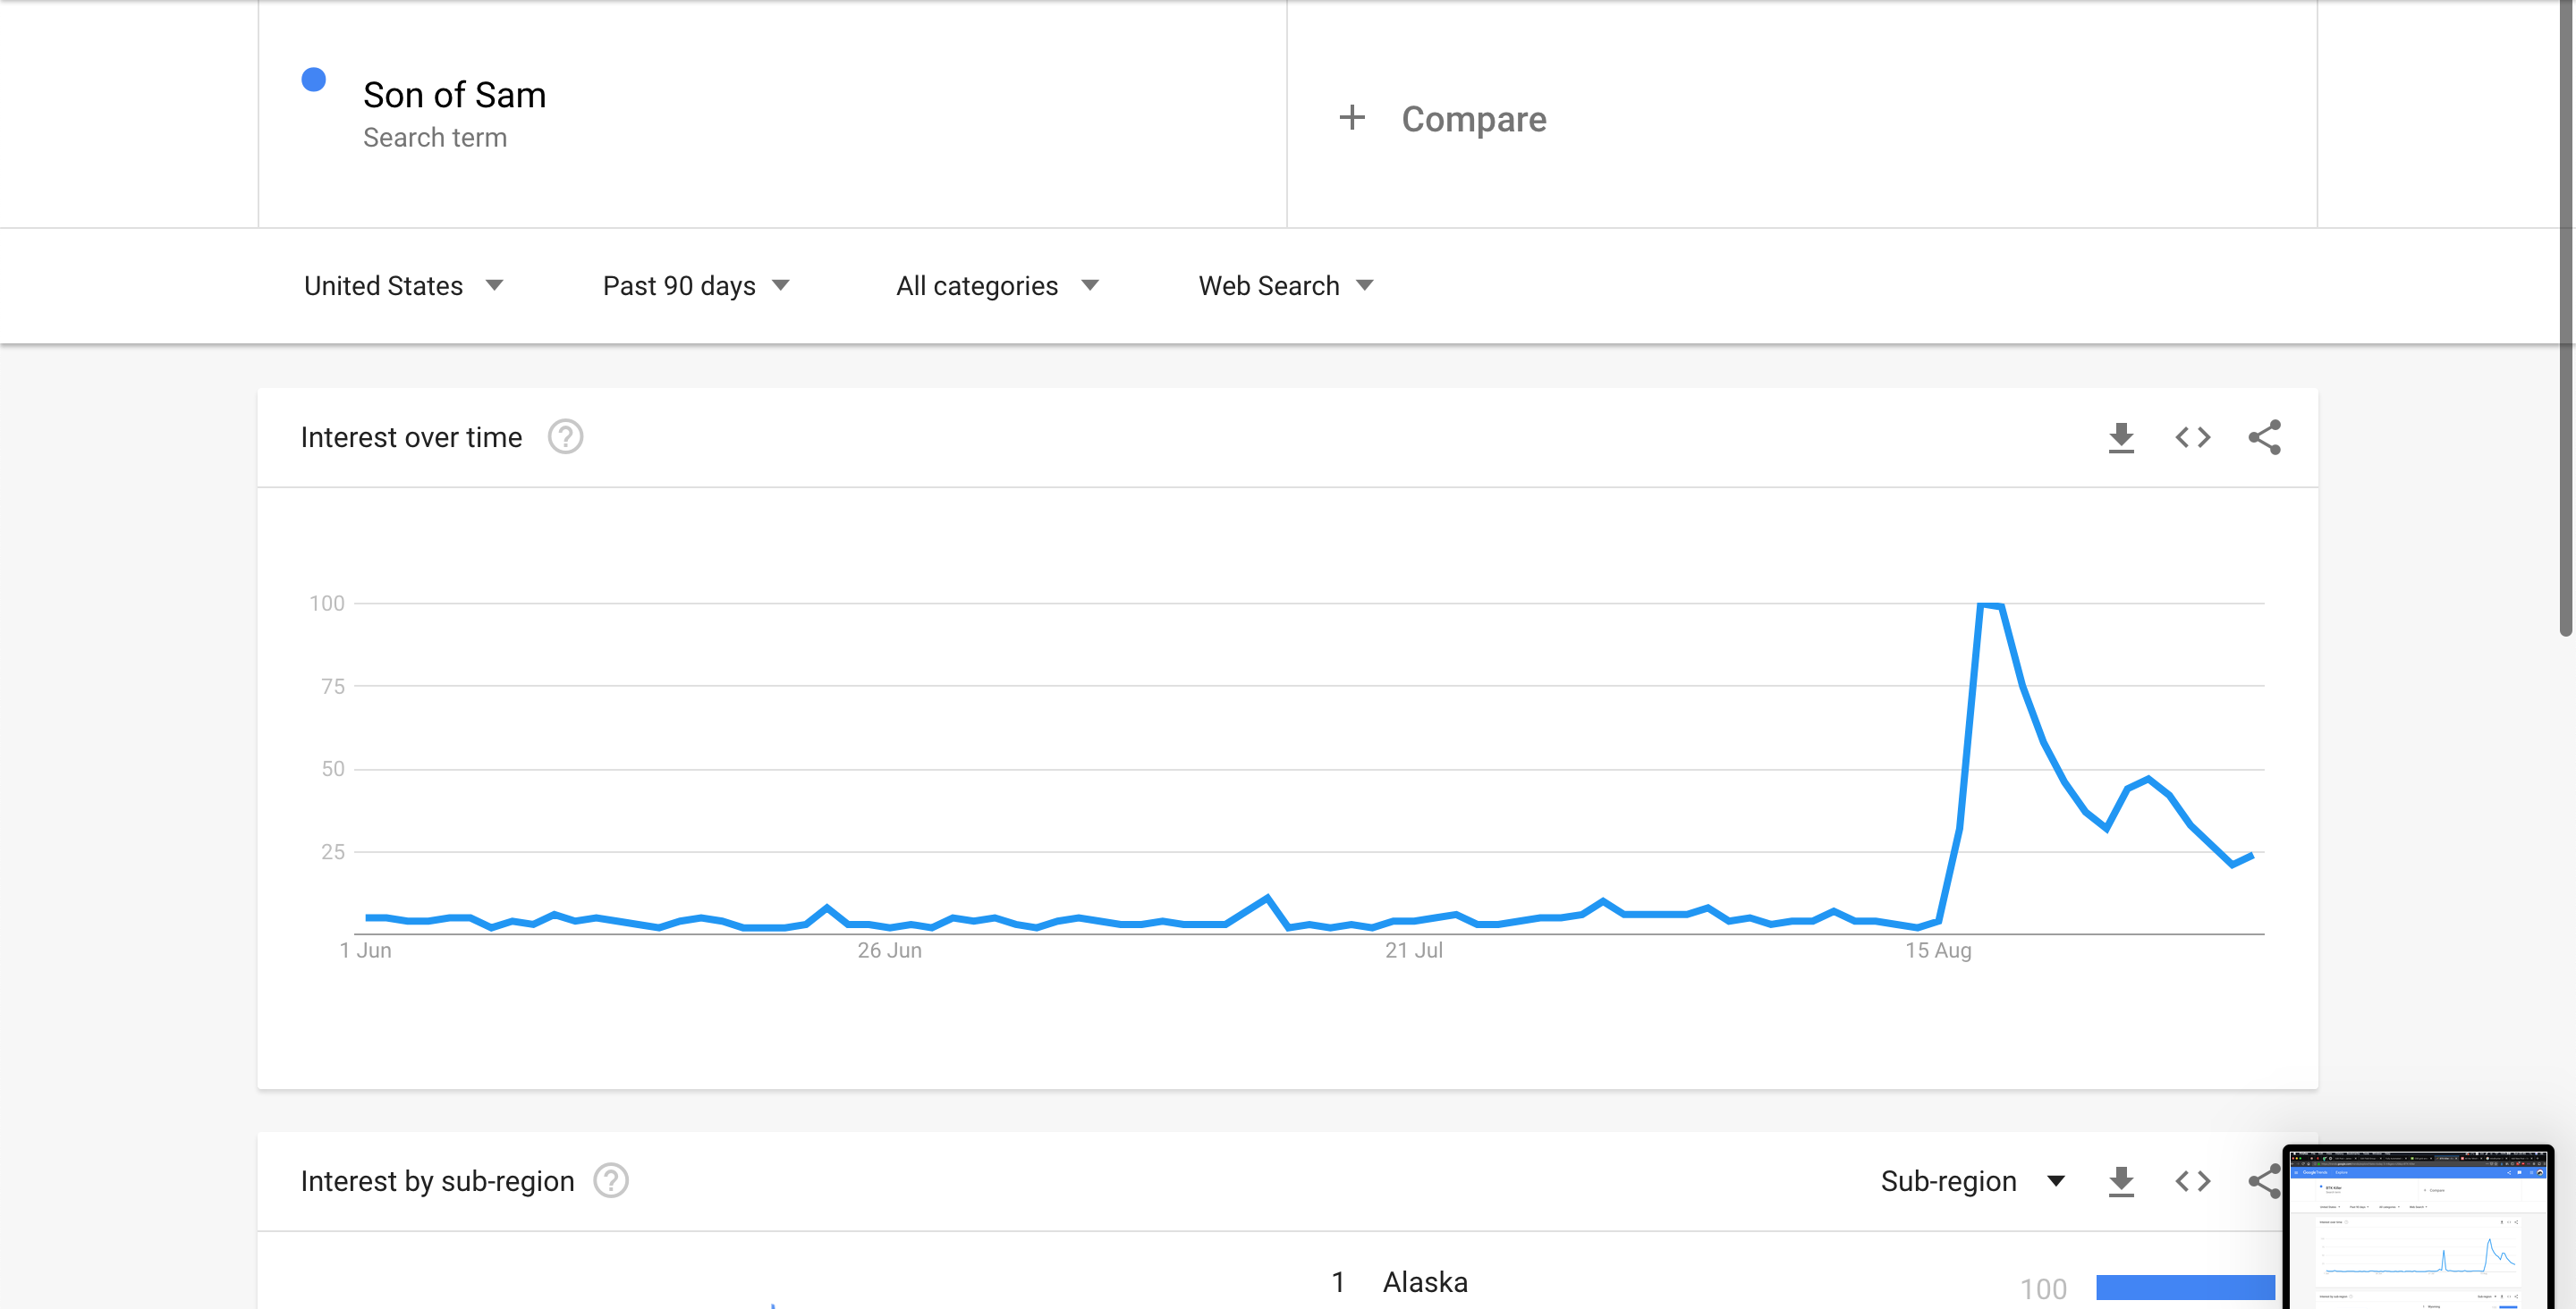 Son of Sam - Google Trends Screenshot